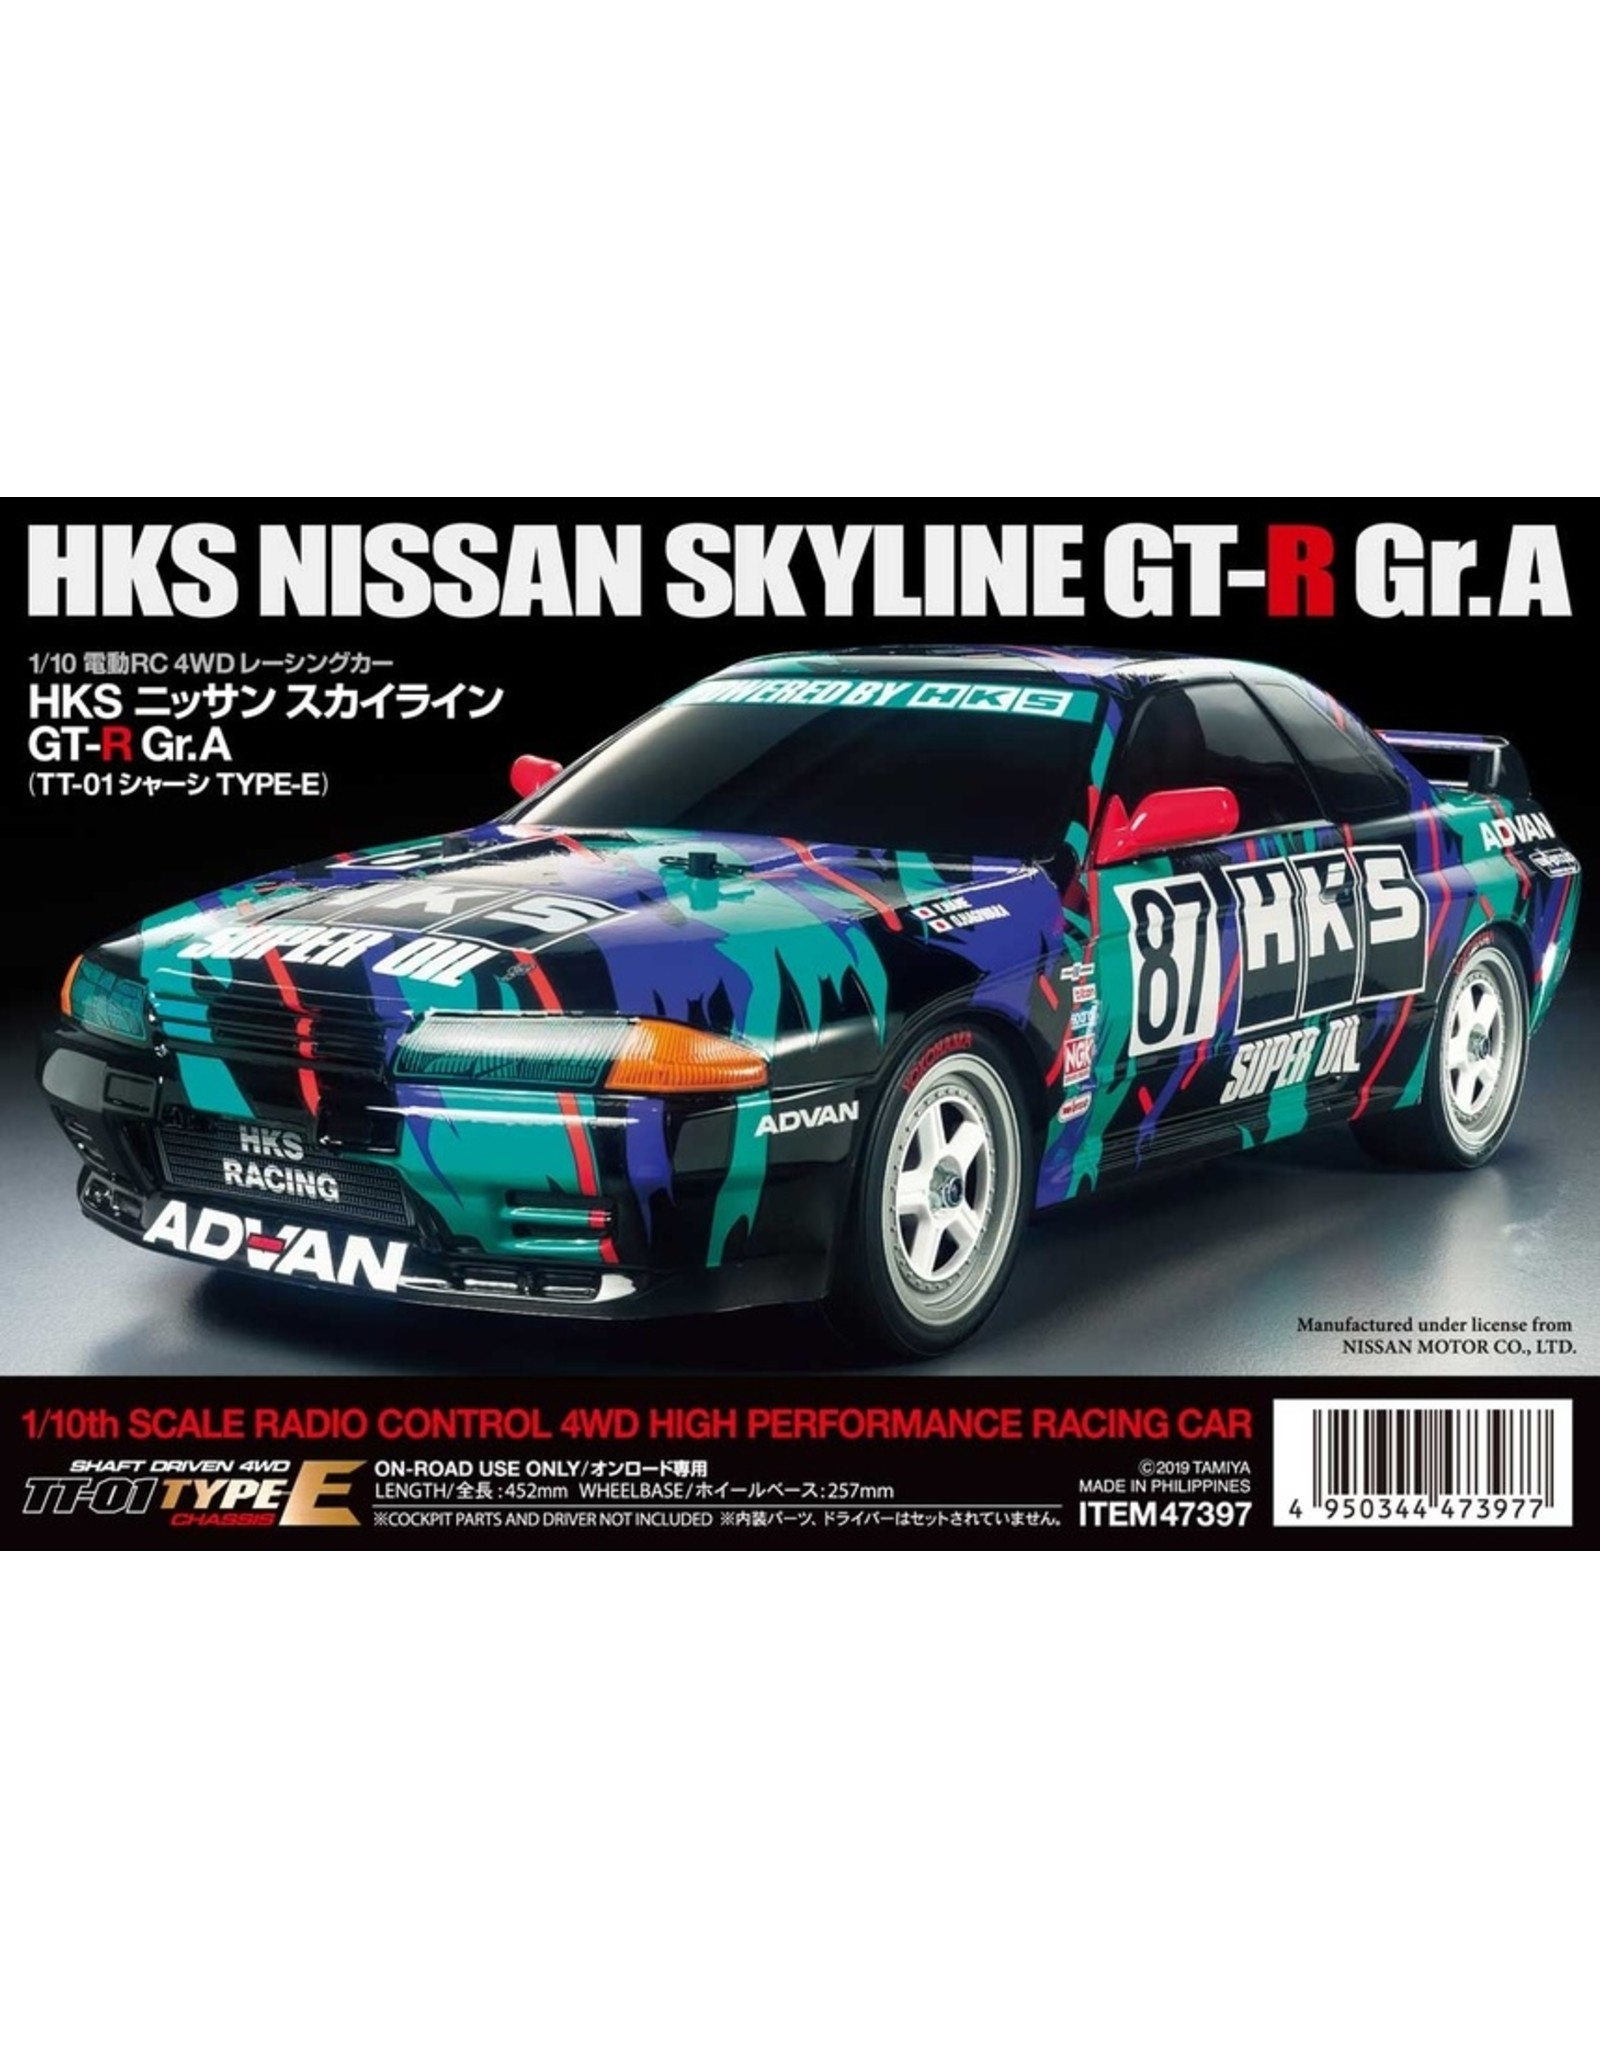 Tamiya 1/10 - Nissan Skyline Gt-R GR.A - TT-01 Type-E Chassis Kit